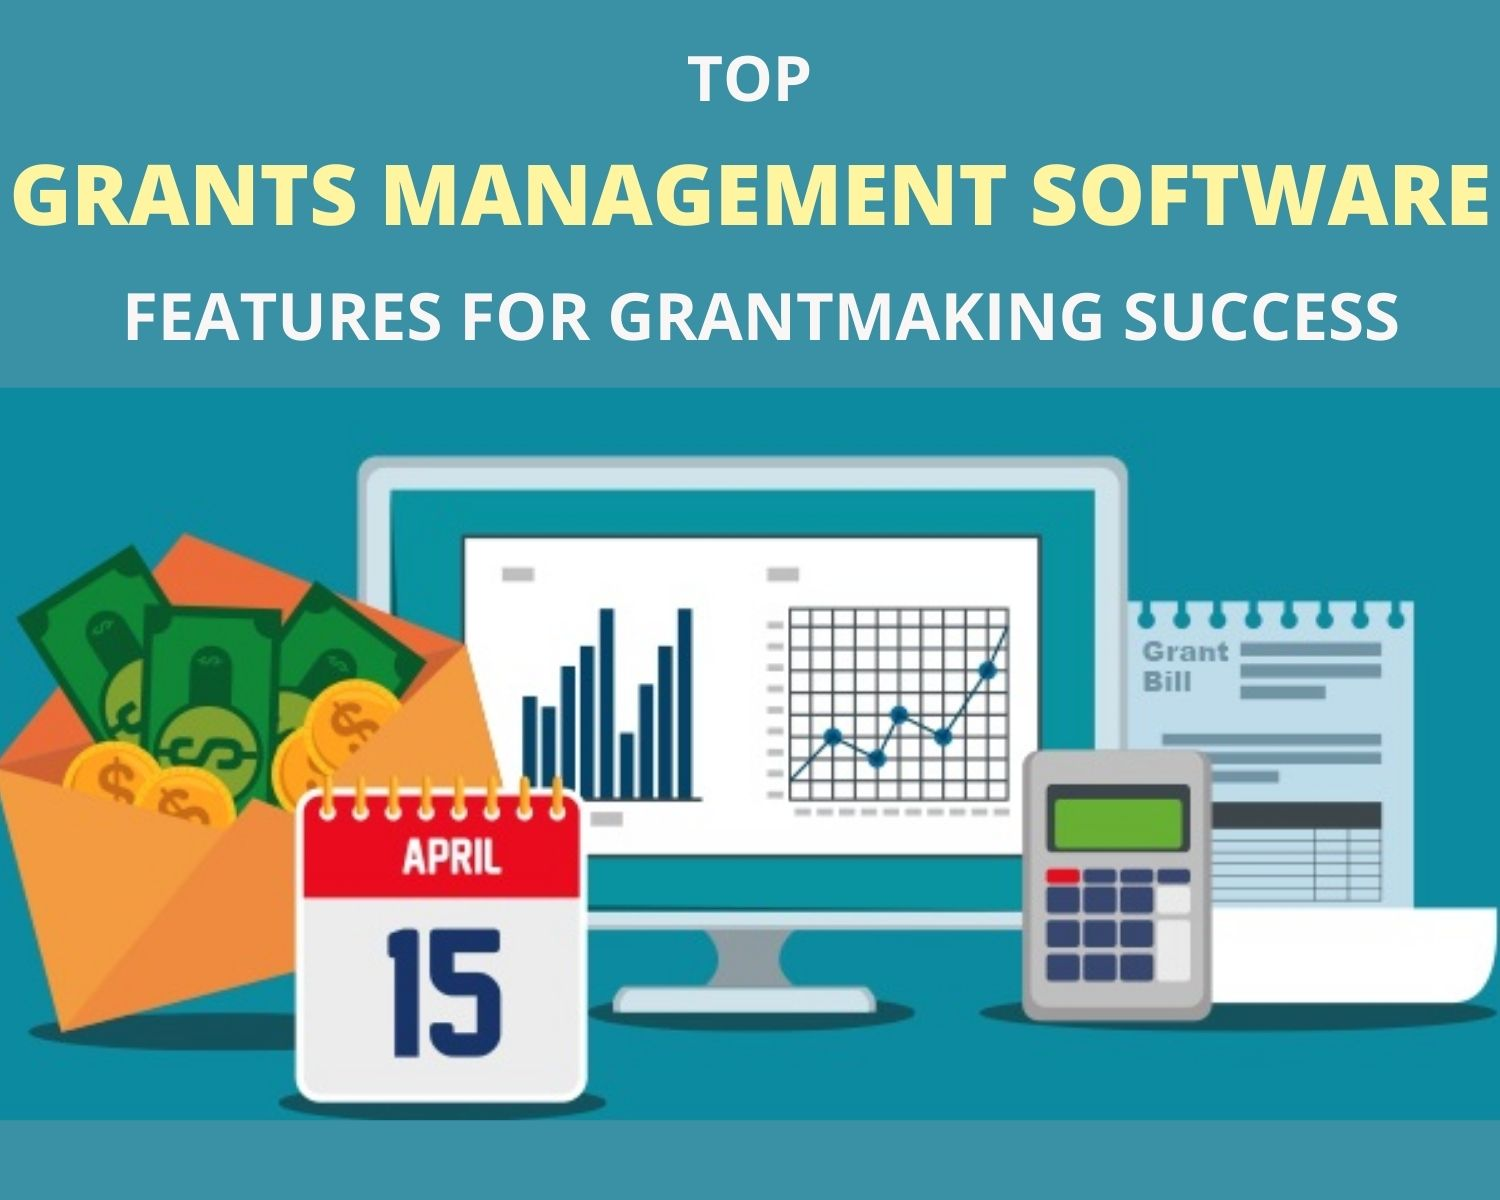 Top Grants Management Software Features for Grant making Success